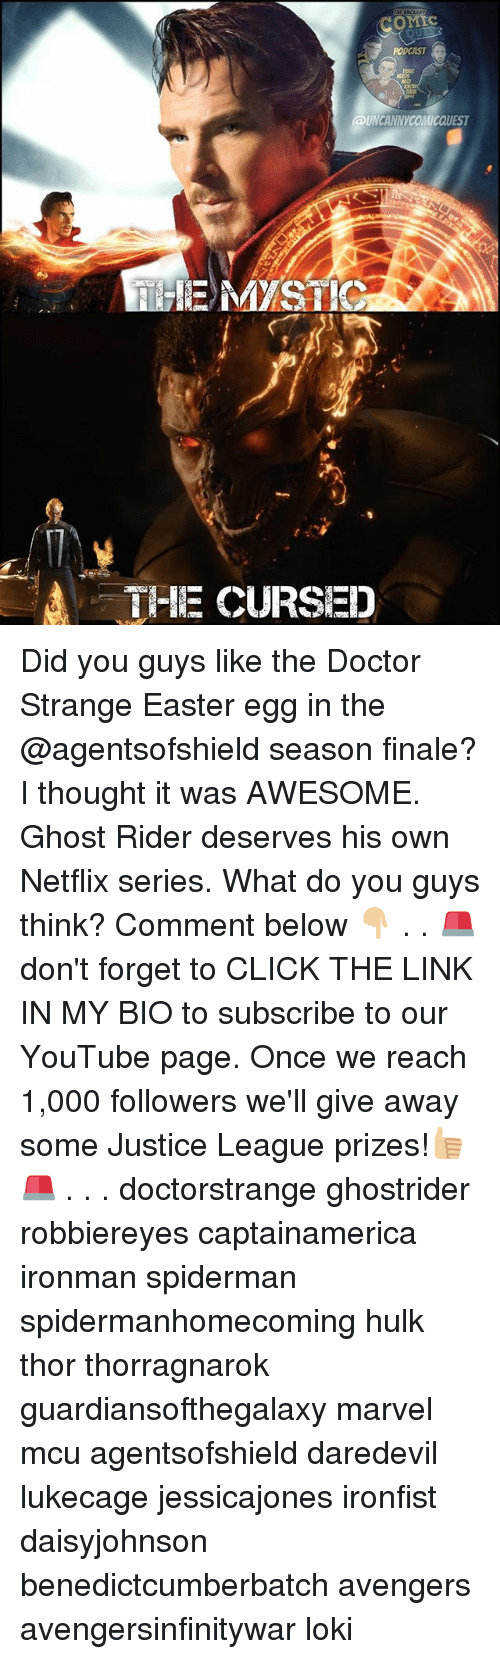 Click, Doctor, and Easter: PODCAST  UNCANNYCOMICQUEST  E MYSTIG  THE CURSED Did you guys like the Doctor Strange Easter egg in the @agentsofshield season finale? I thought it was AWESOME. Ghost Rider deserves his own Netflix series. What do you guys think? Comment below 👇🏼 . . 🚨don't forget to CLICK THE LINK IN MY BIO to subscribe to our YouTube page. Once we reach 1,000 followers we'll give away some Justice League prizes!👍🏼🚨 . . . doctorstrange ghostrider robbiereyes captainamerica ironman spiderman spidermanhomecoming hulk thor thorragnarok guardiansofthegalaxy marvel mcu agentsofshield daredevil lukecage jessicajones ironfist daisyjohnson benedictcumberbatch avengers avengersinfinitywar loki